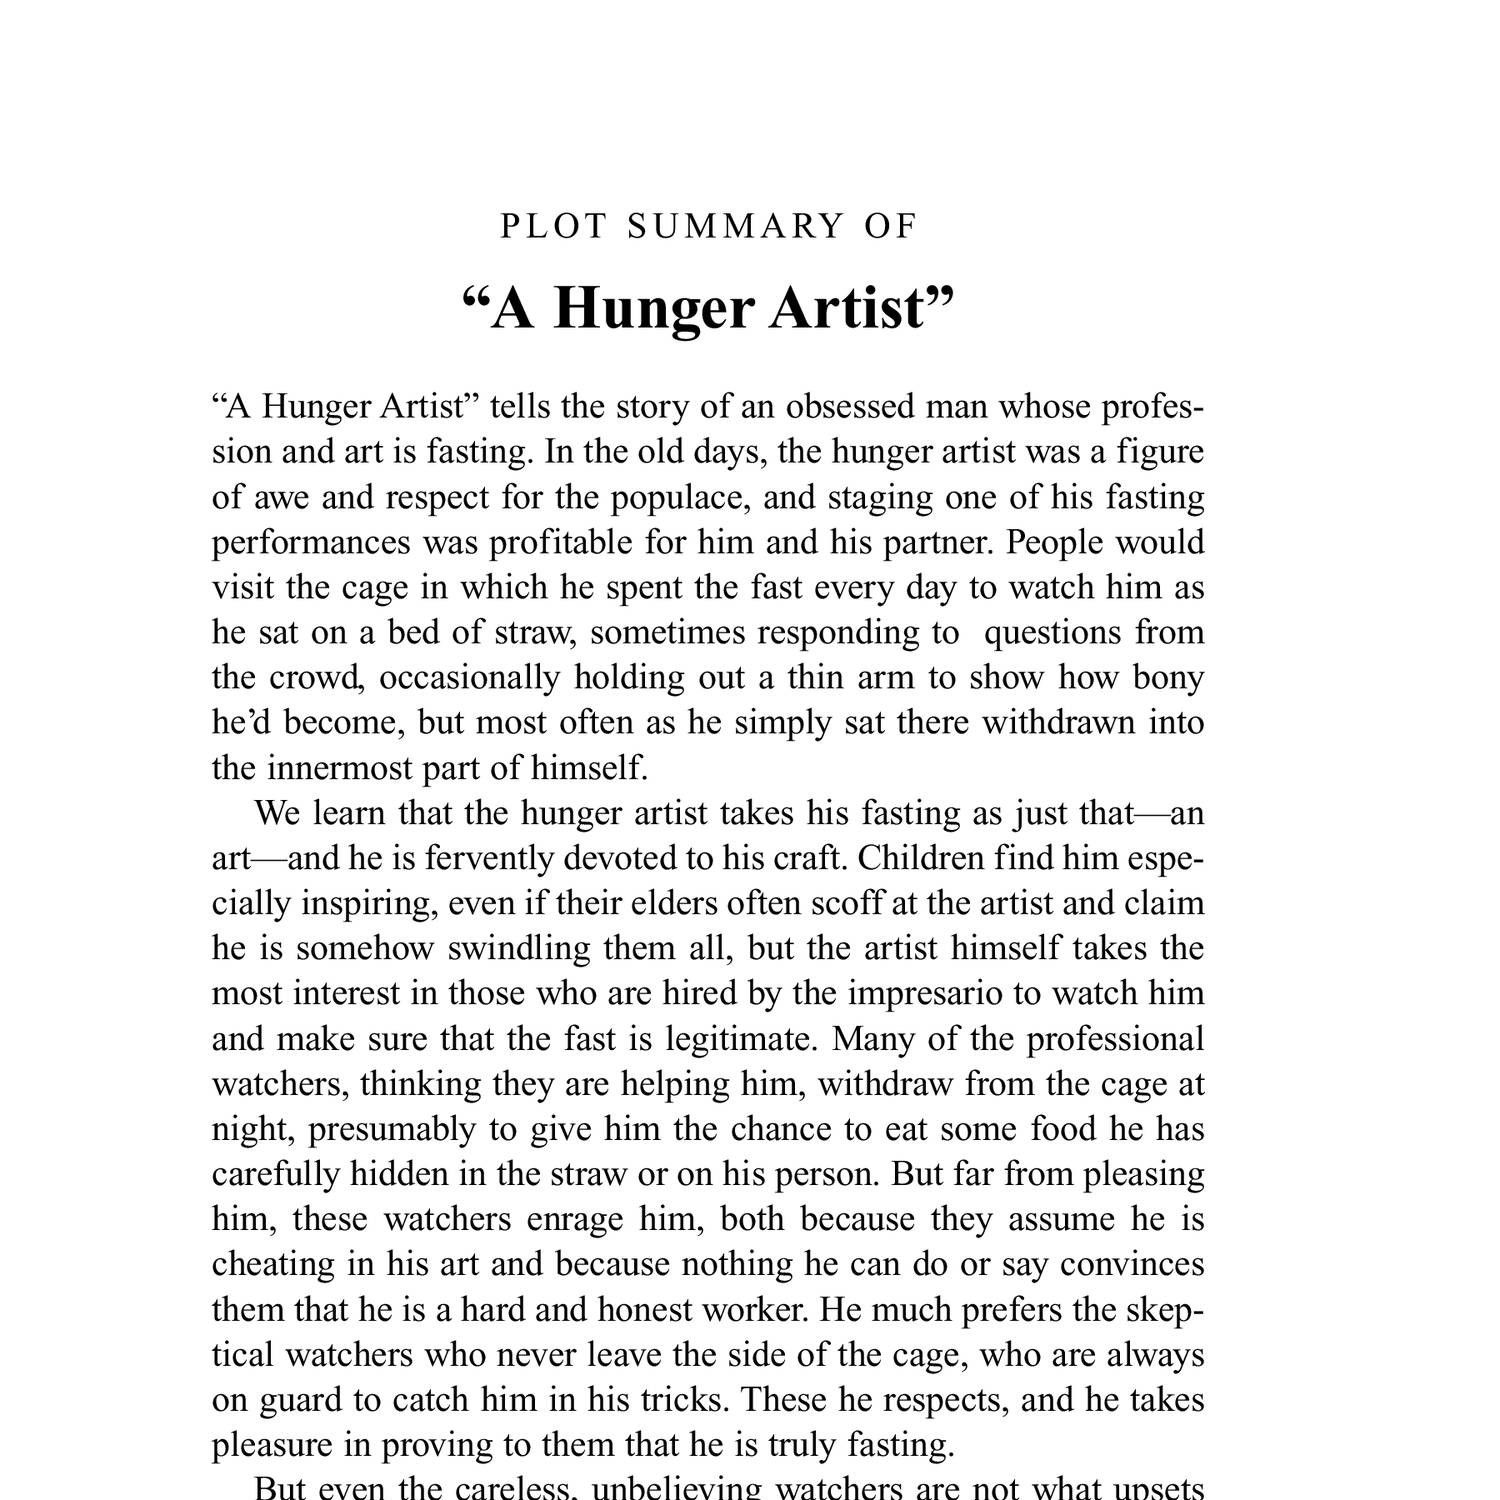 short story with author and summary